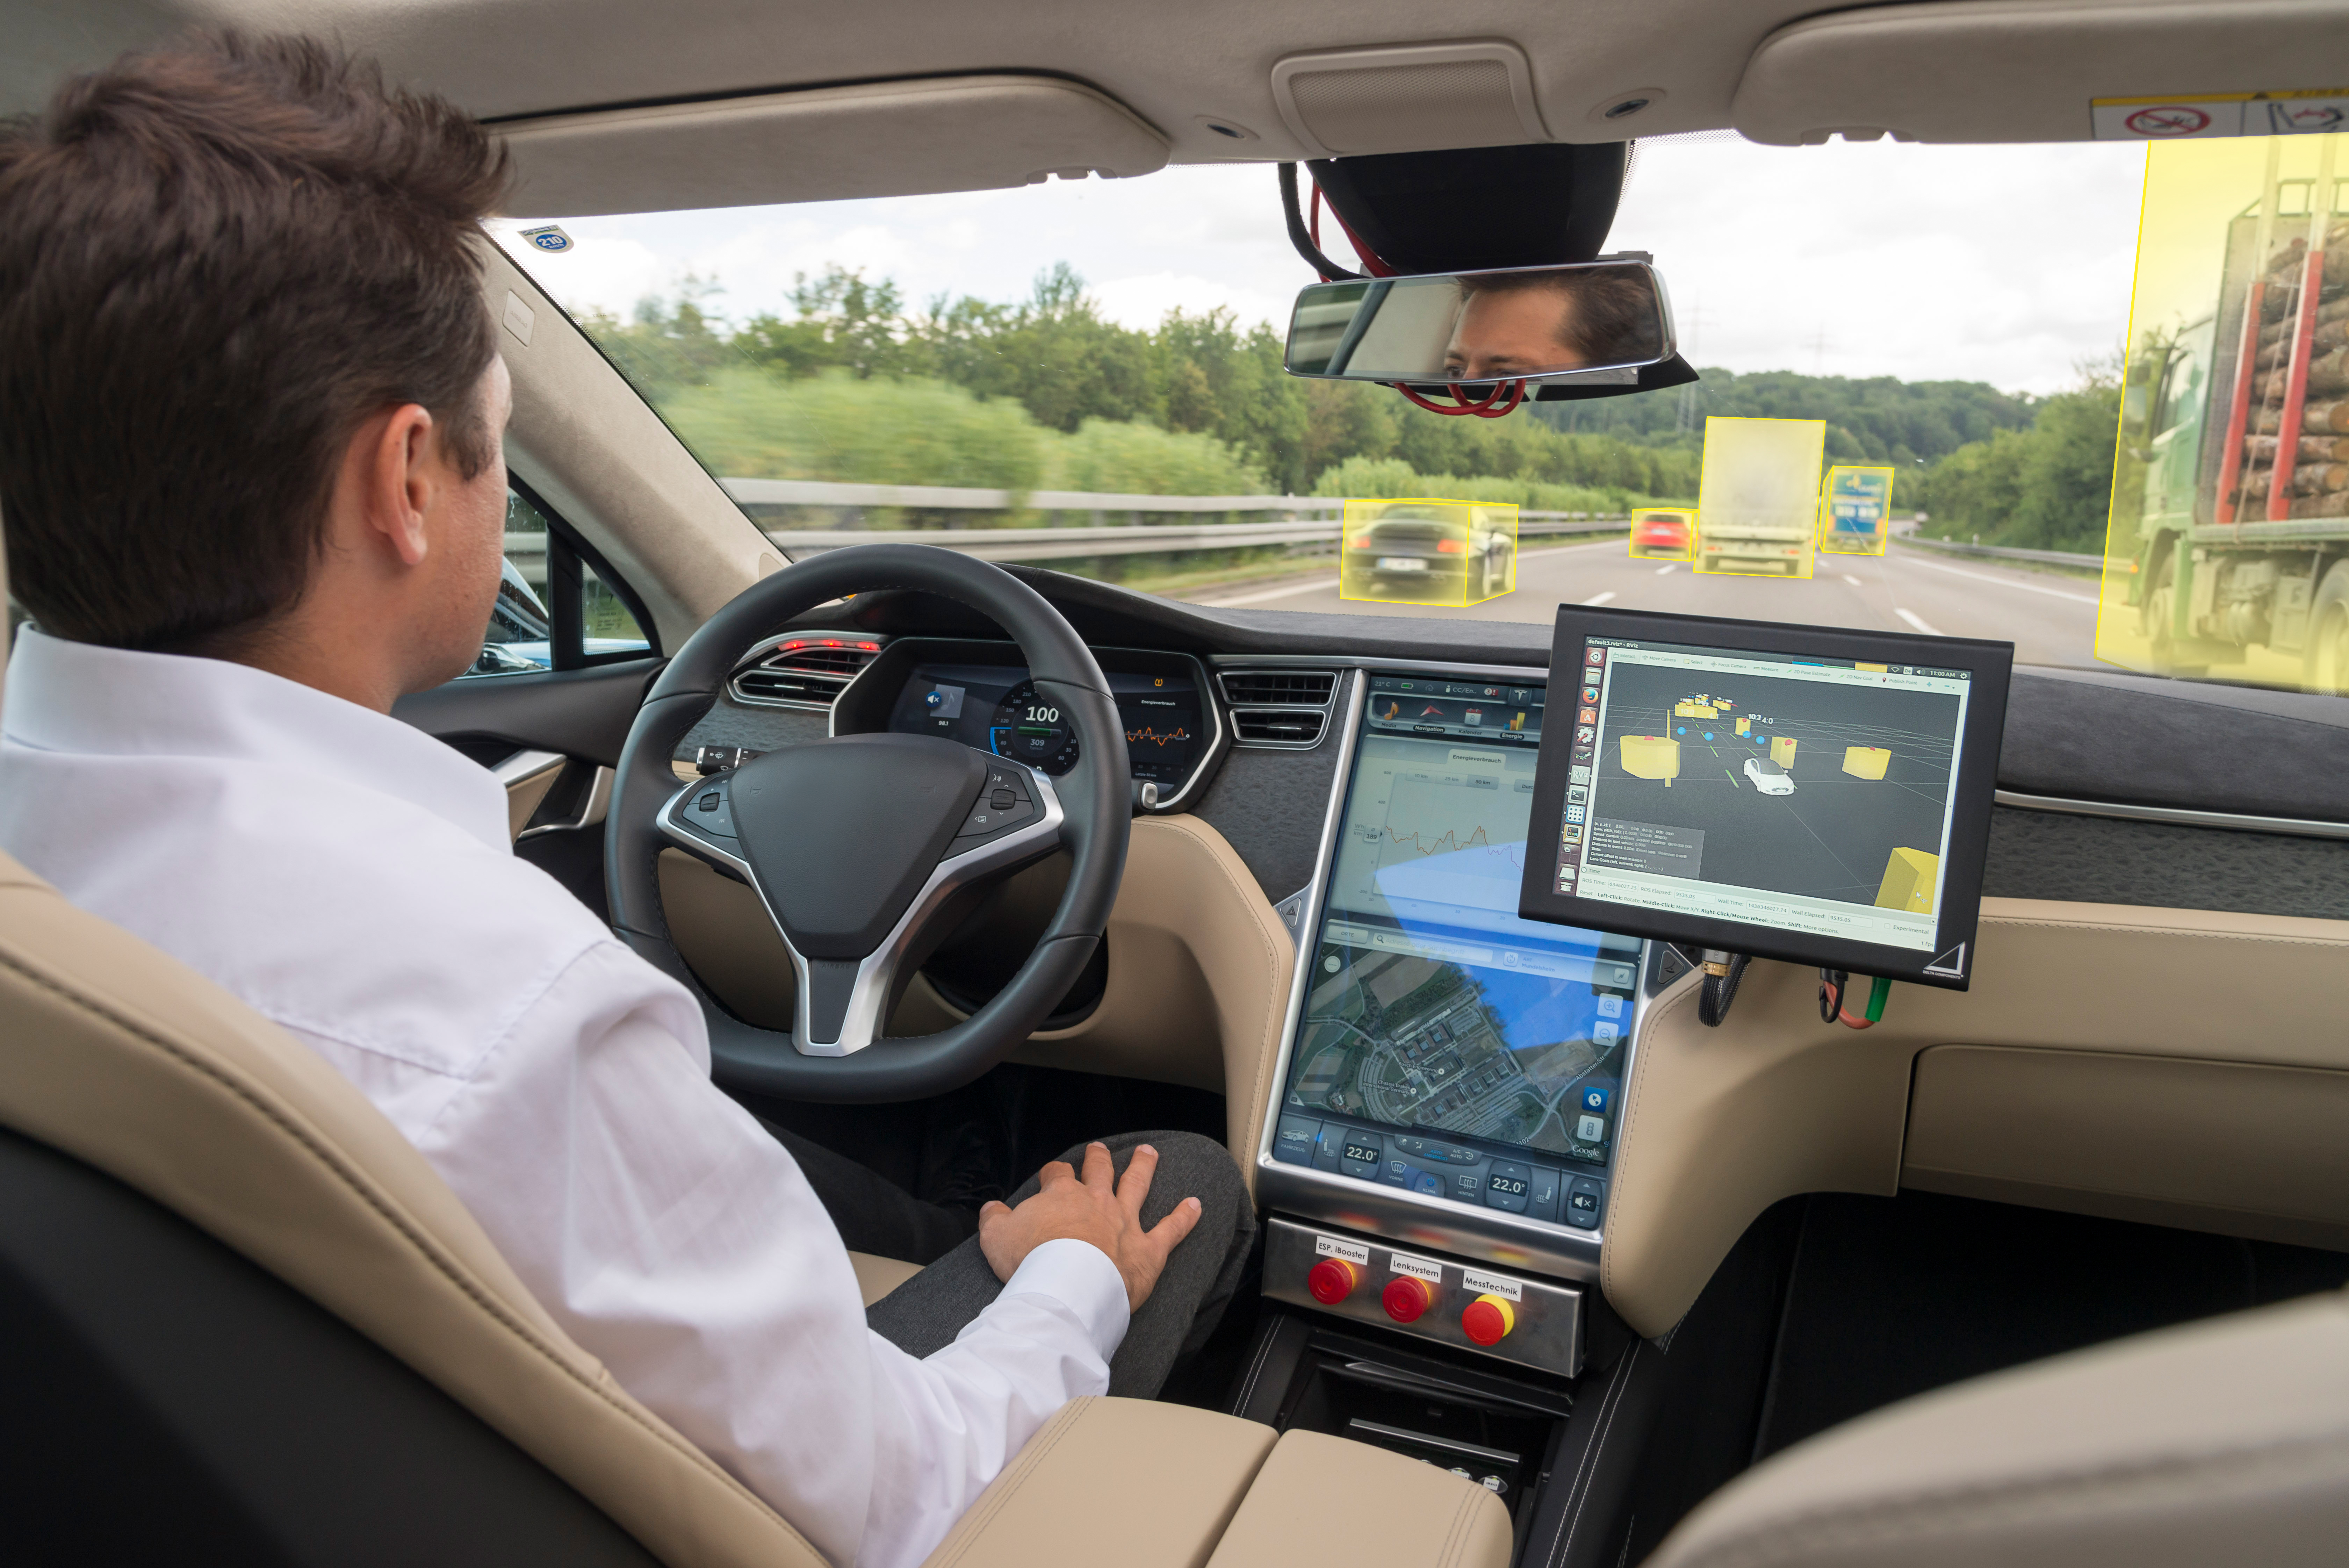 Automated driving makes roads safer, and artificial intelligence is the key to making that happen